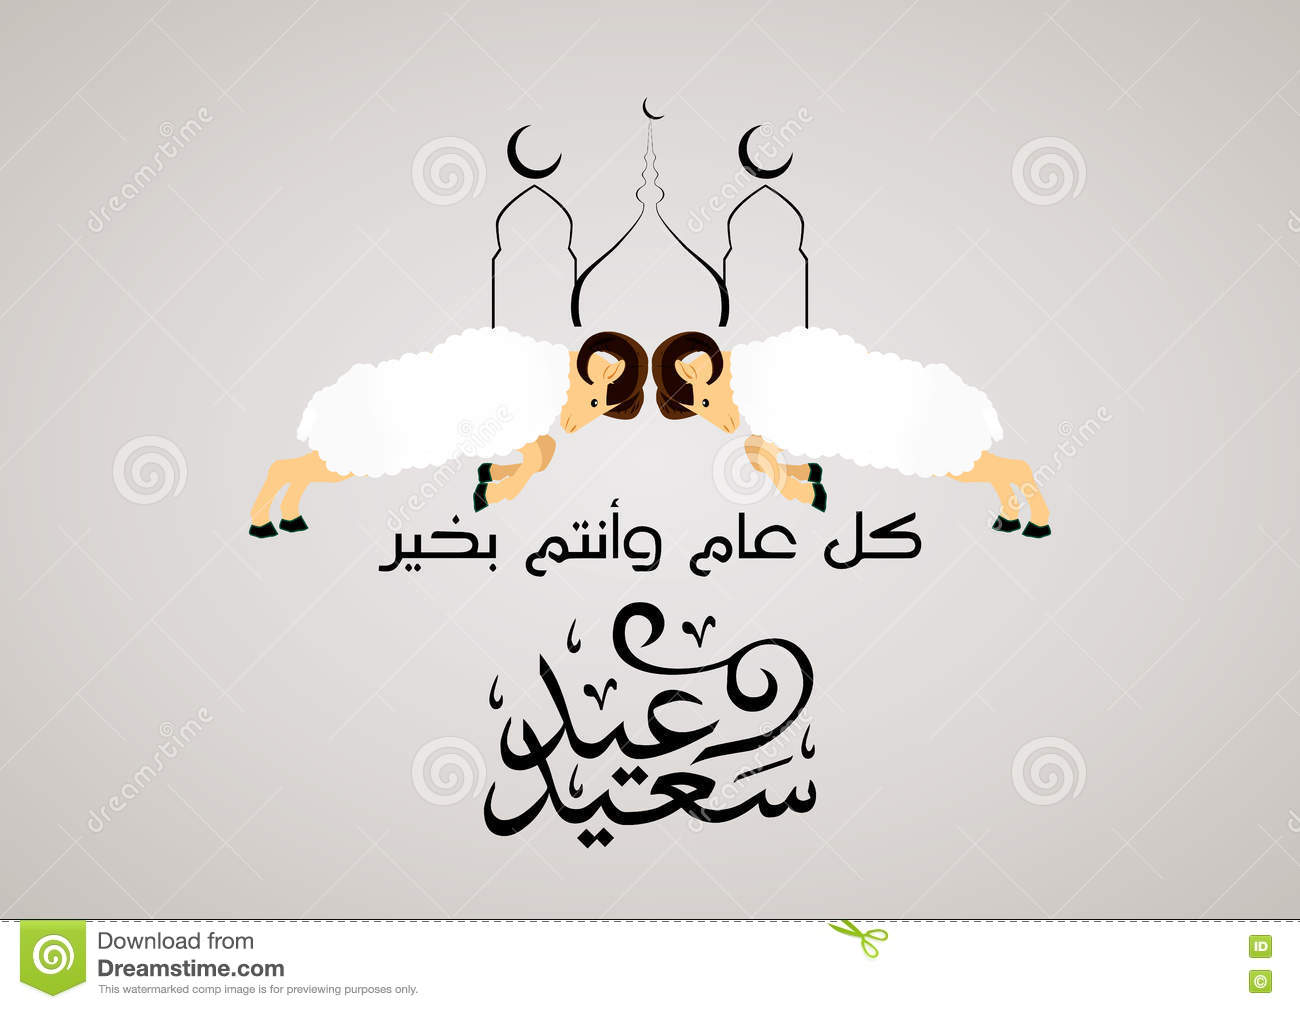 Greeting card on the occasion eid al adha mubarak with beautiful greeting card on the occasion eid al adha mubarak with beautiful ram or sheep and arabic calligraphy kristyandbryce Image collections